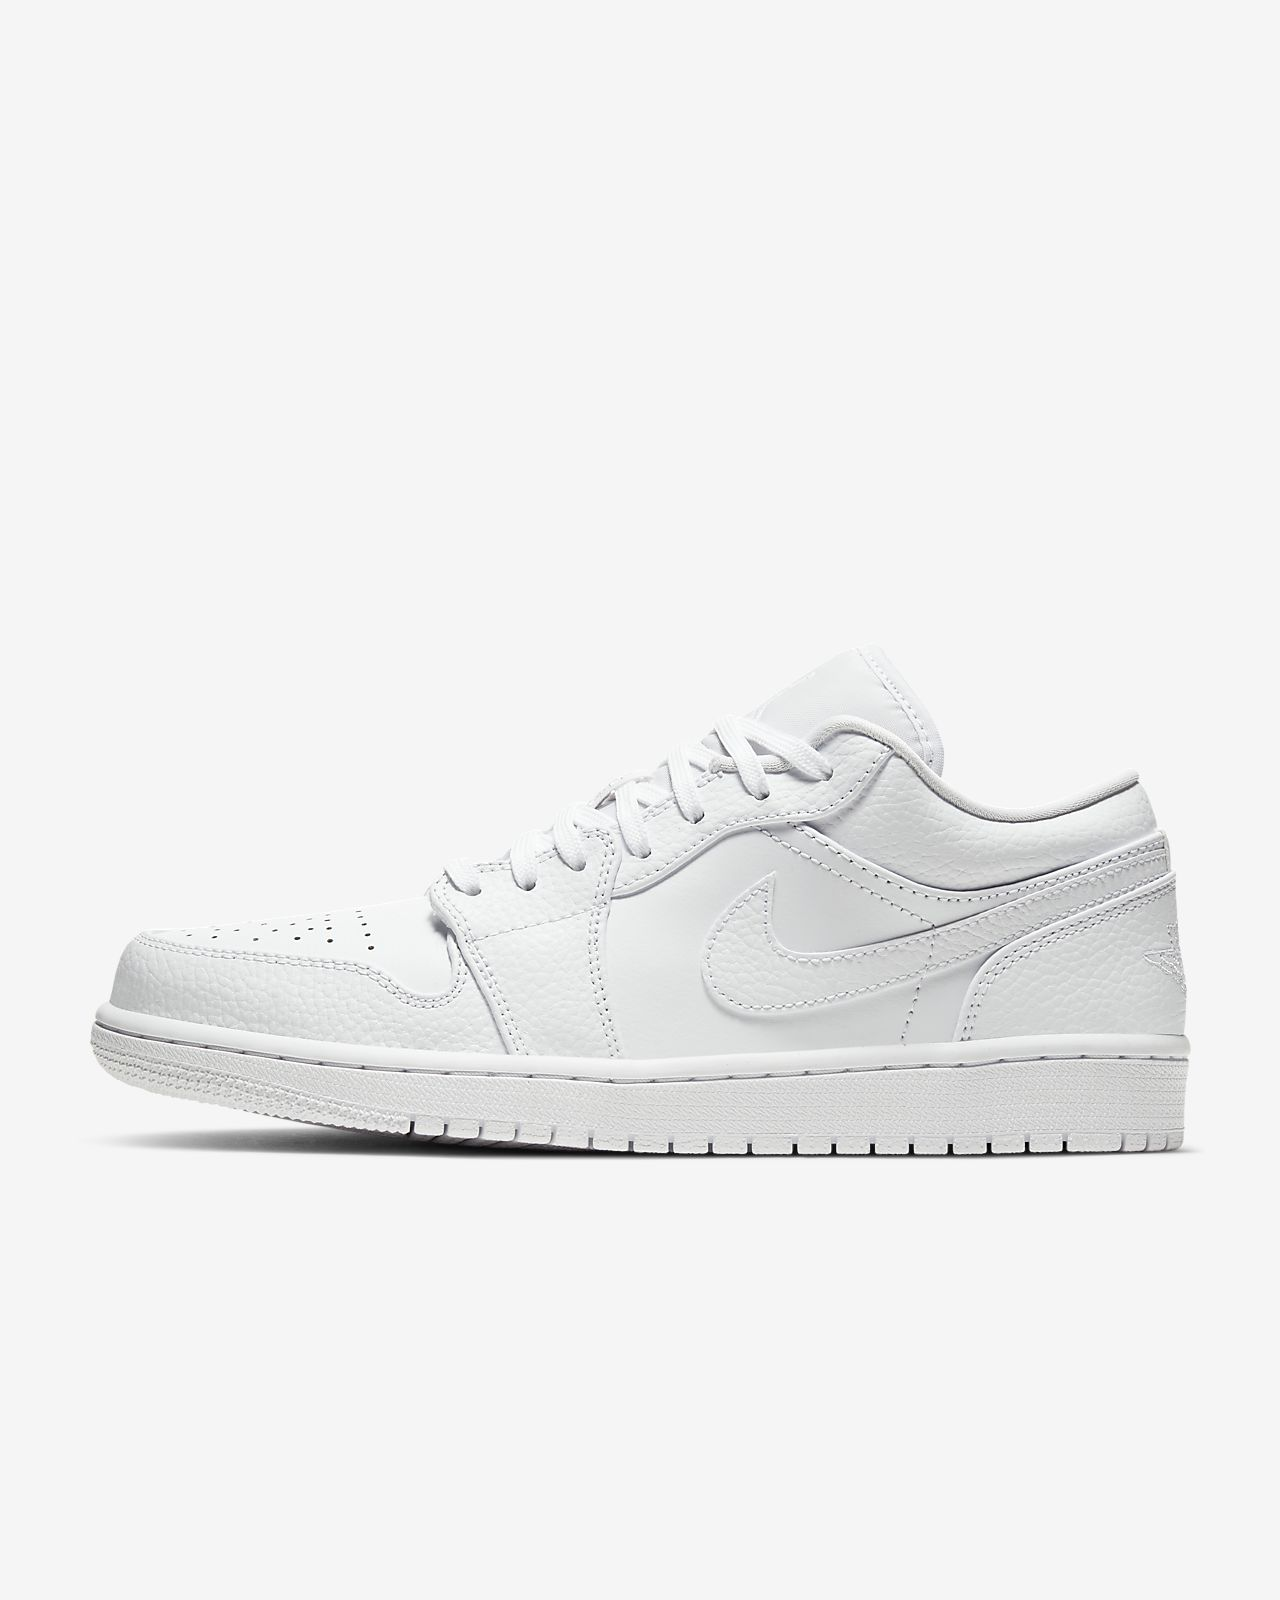 Air Jordan 1 Low Schoen